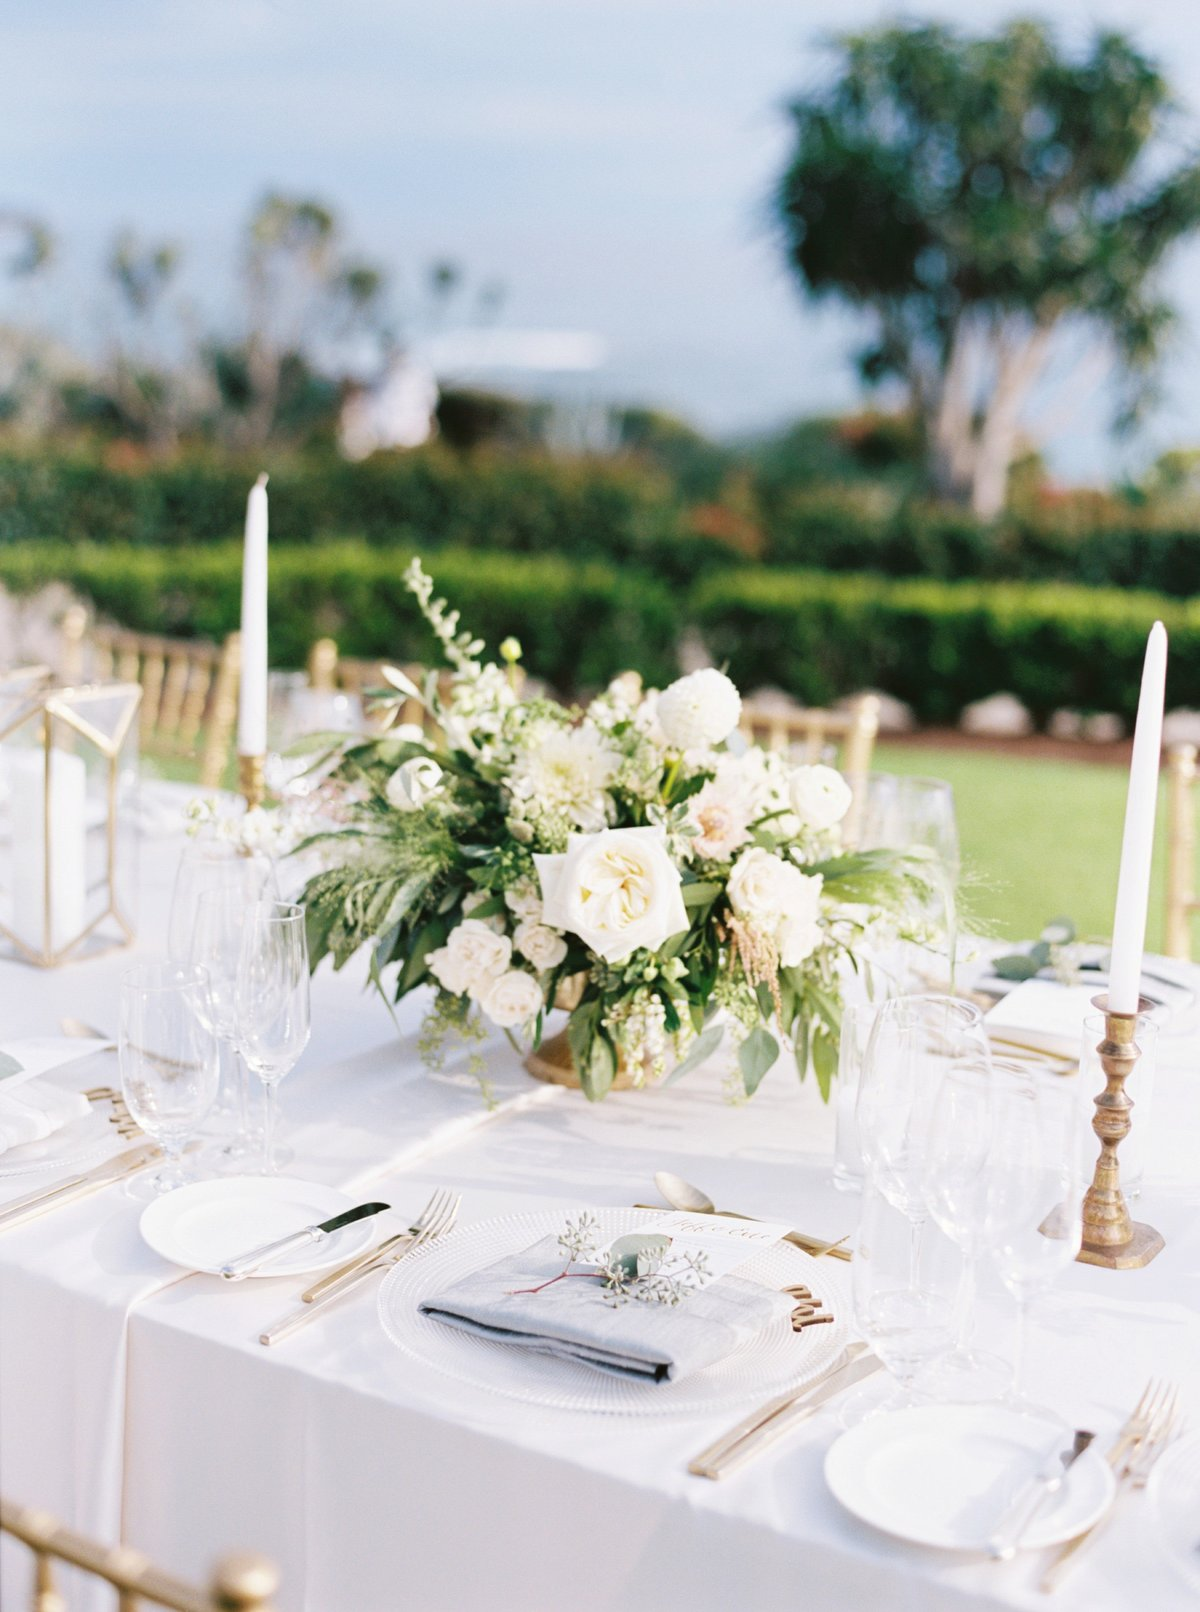 nicoleclareyphotography_evan+jeff_laguna beach_wedding_0041